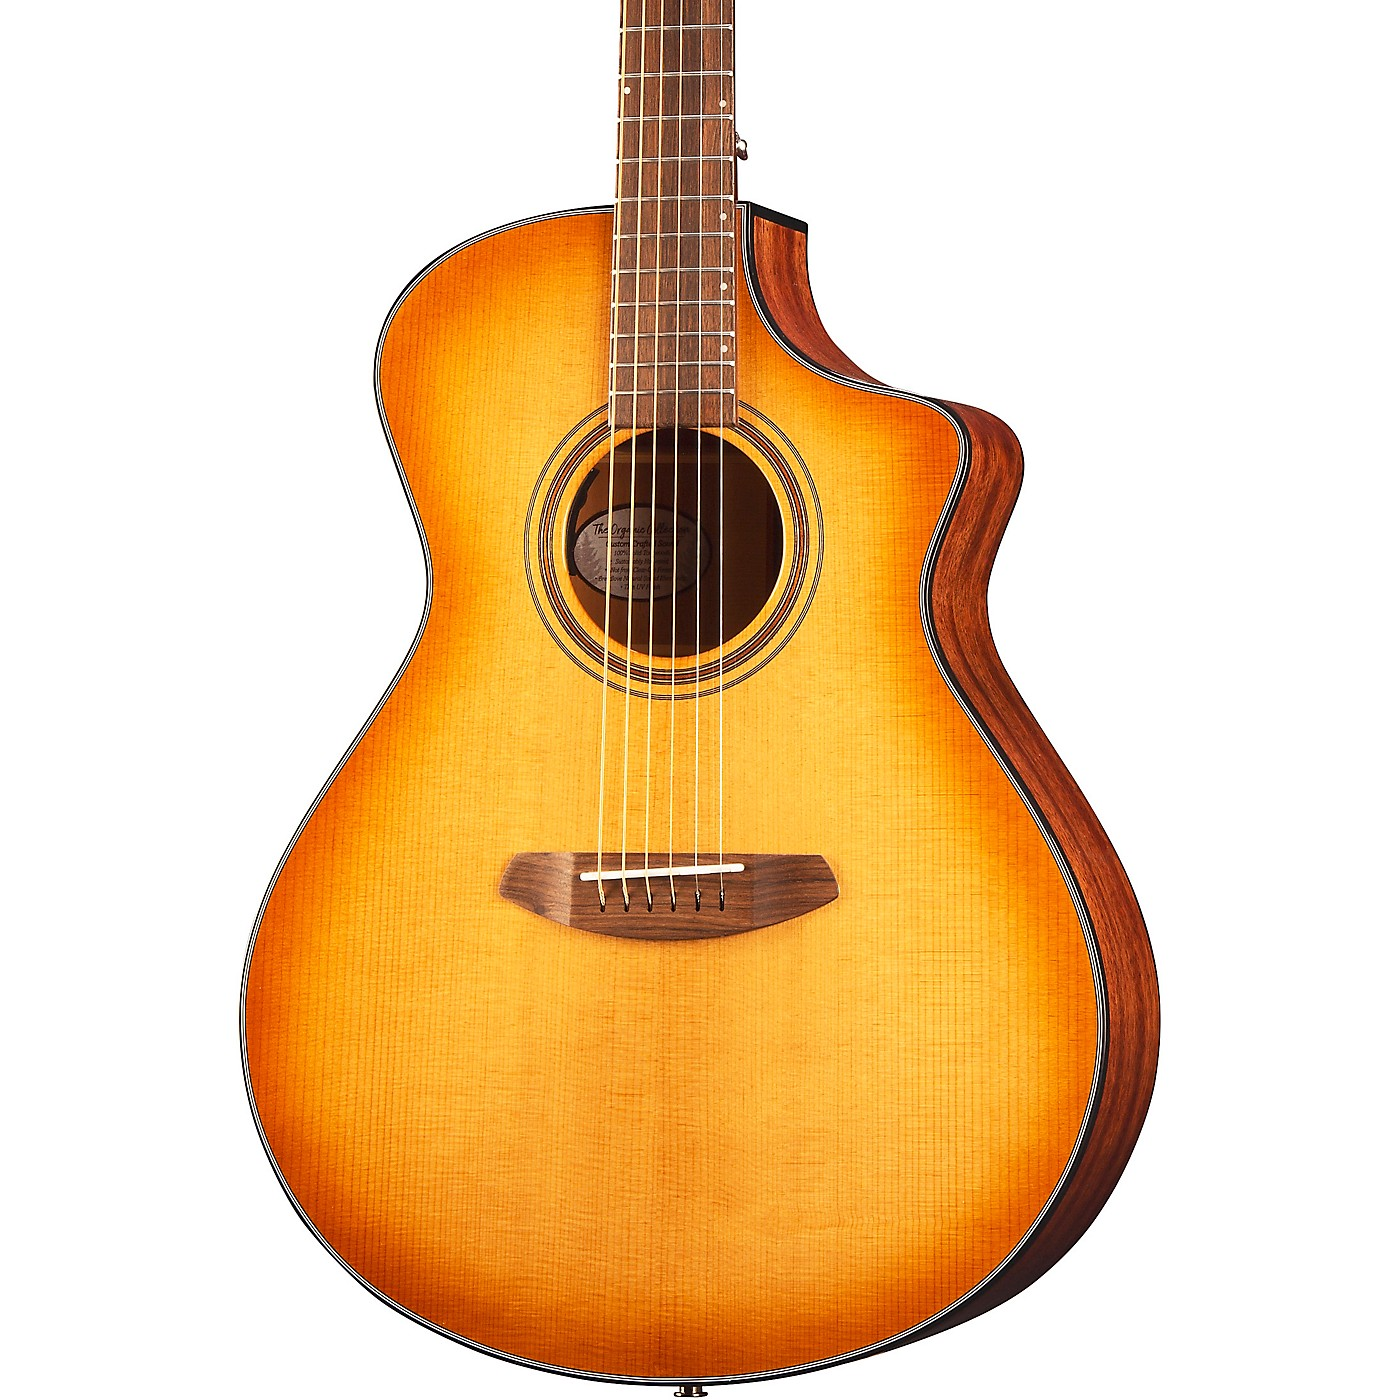 Breedlove Organic Collection Signature Concert Cutaway CE Acoustic-Electric Guitar thumbnail